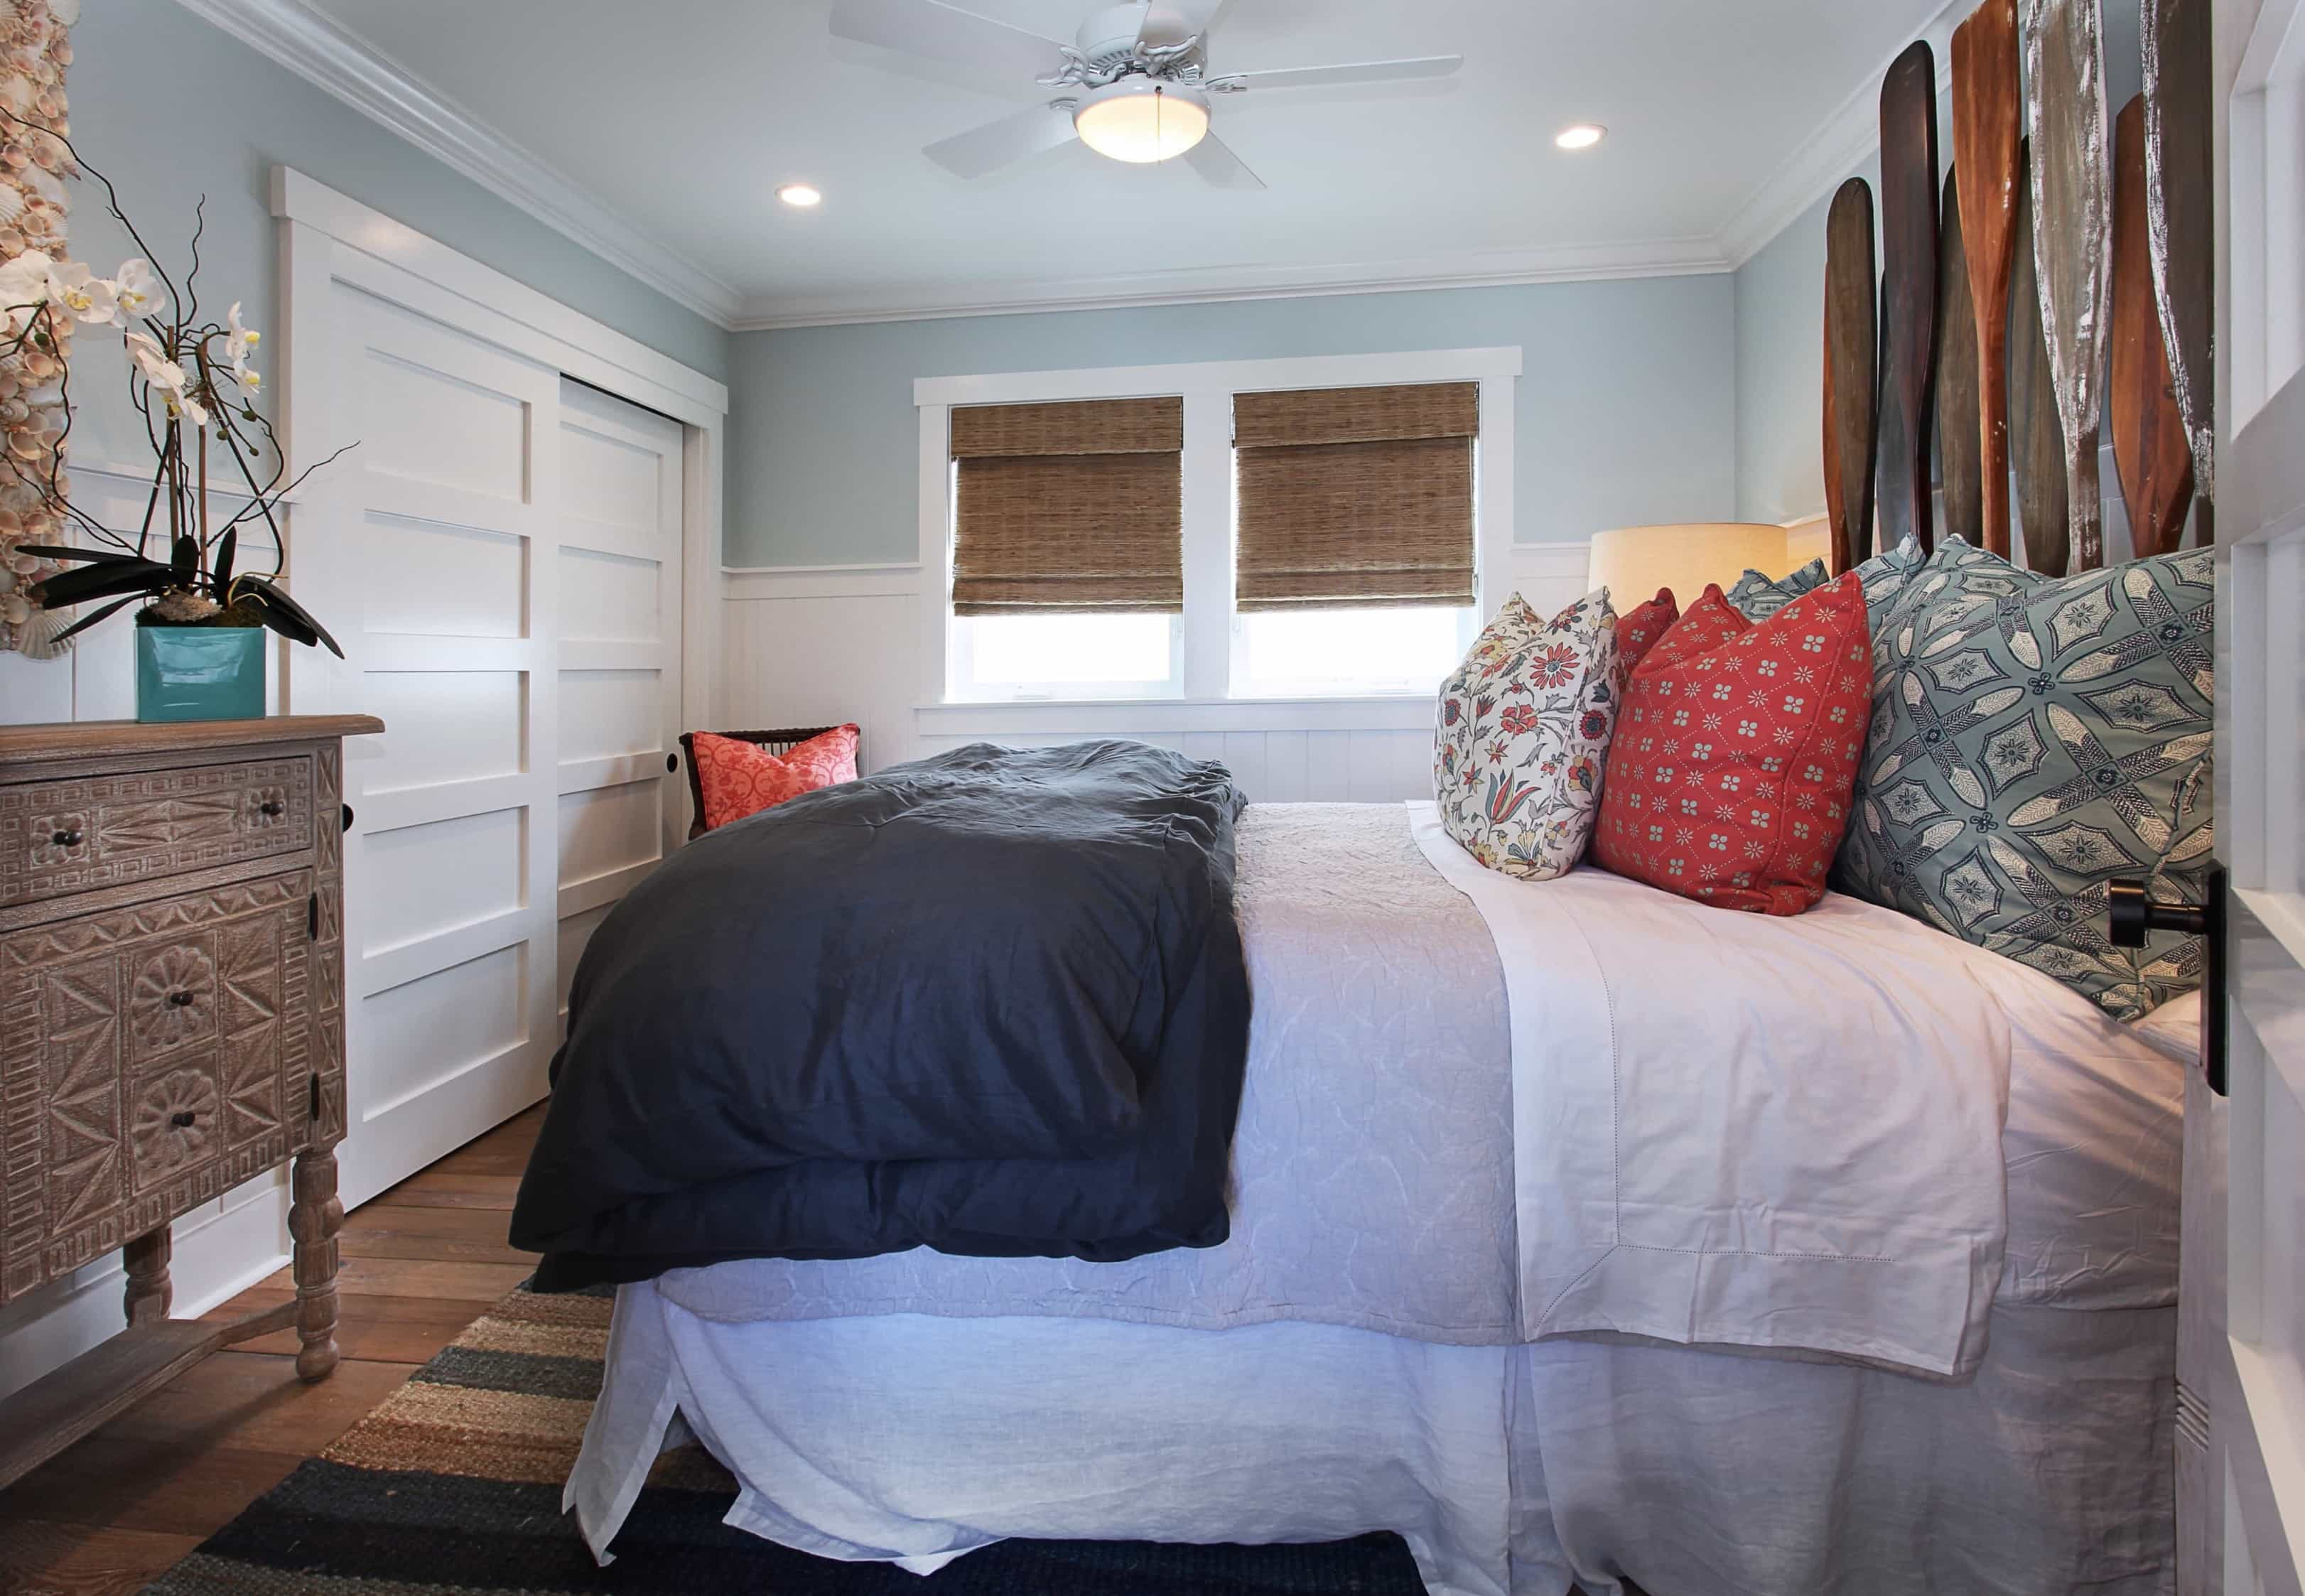 Featured Image of Blue Coastal Bedroom With Oar Headboard